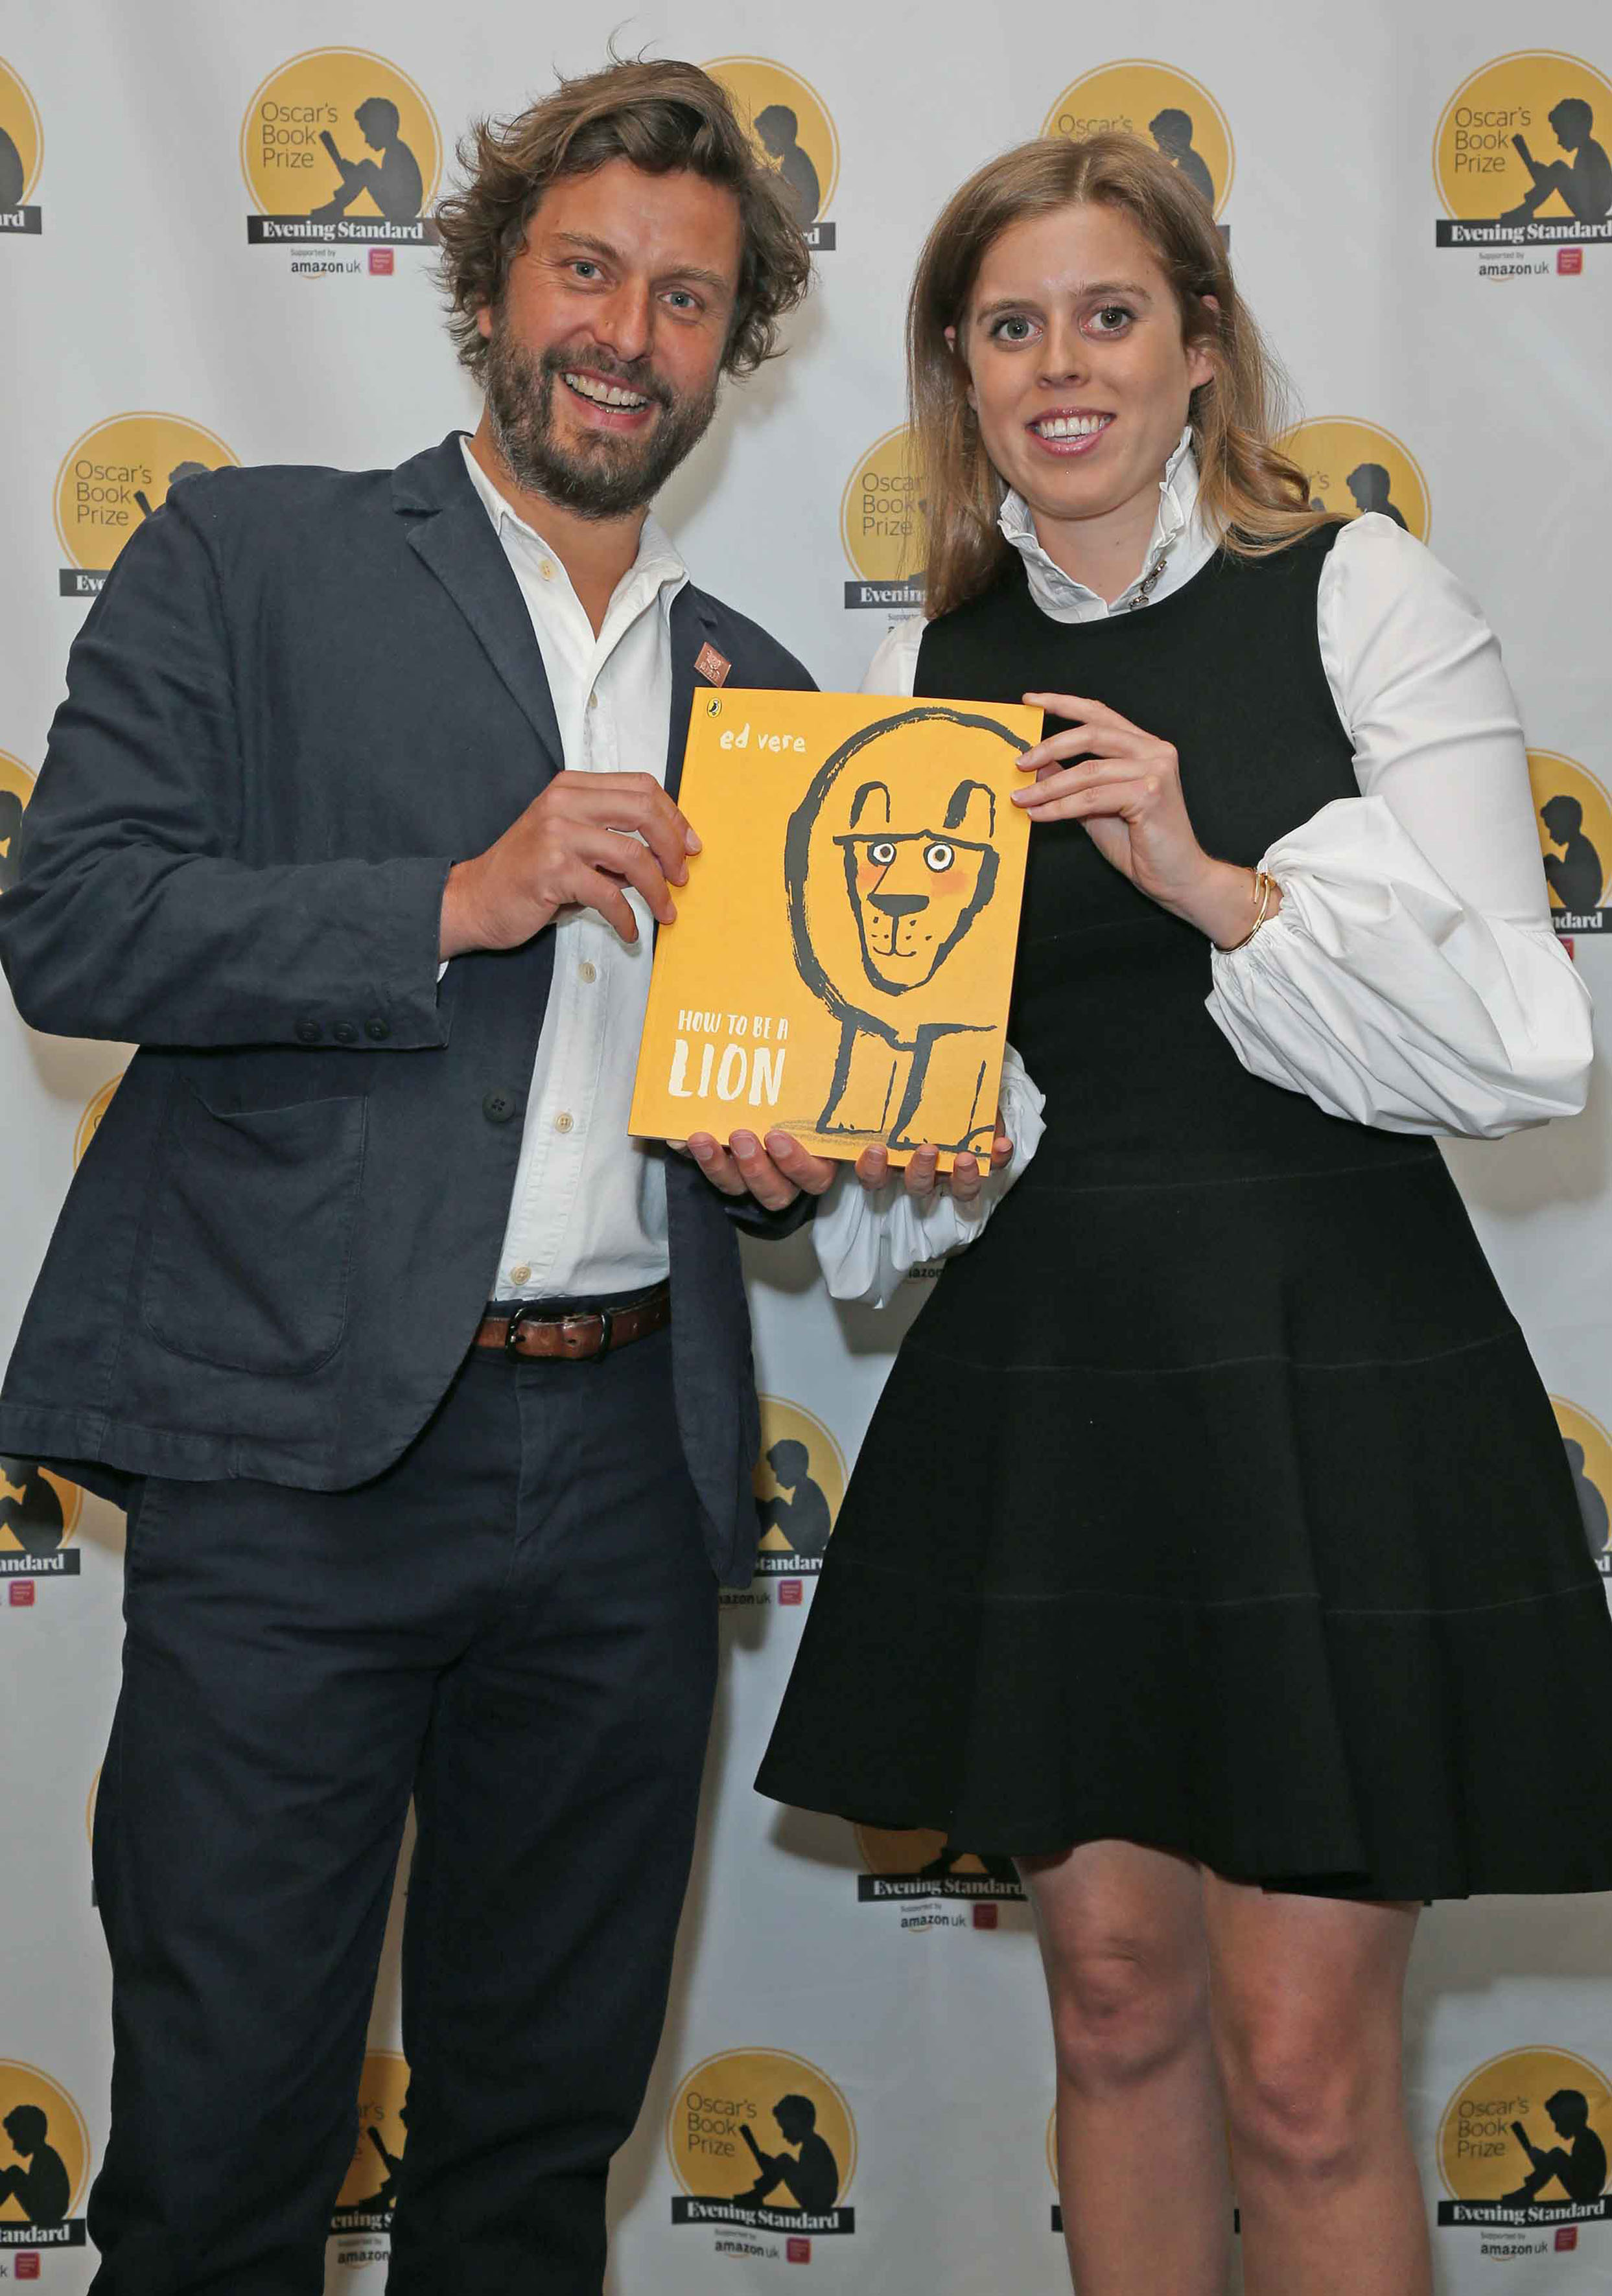 Worthy winner: Ed Vere, recipient of the 2019 Oscar's Book Prize, with HRH Princess Beatrice. Photography: Nigel Howard Media.